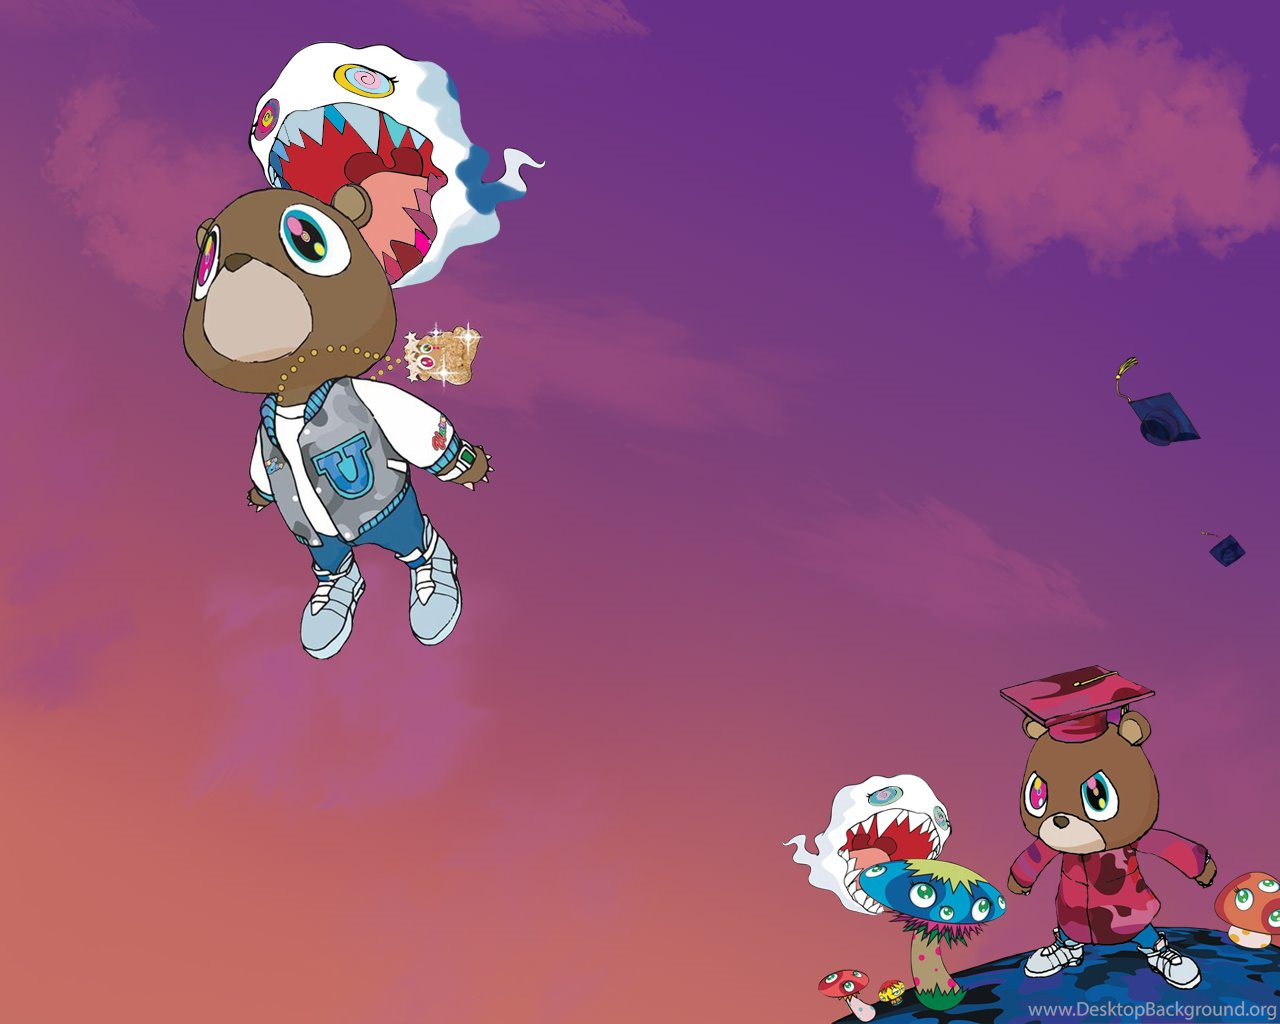 Request Dope Hq Kanye West Graduation Wallpapers Kanye West Forum